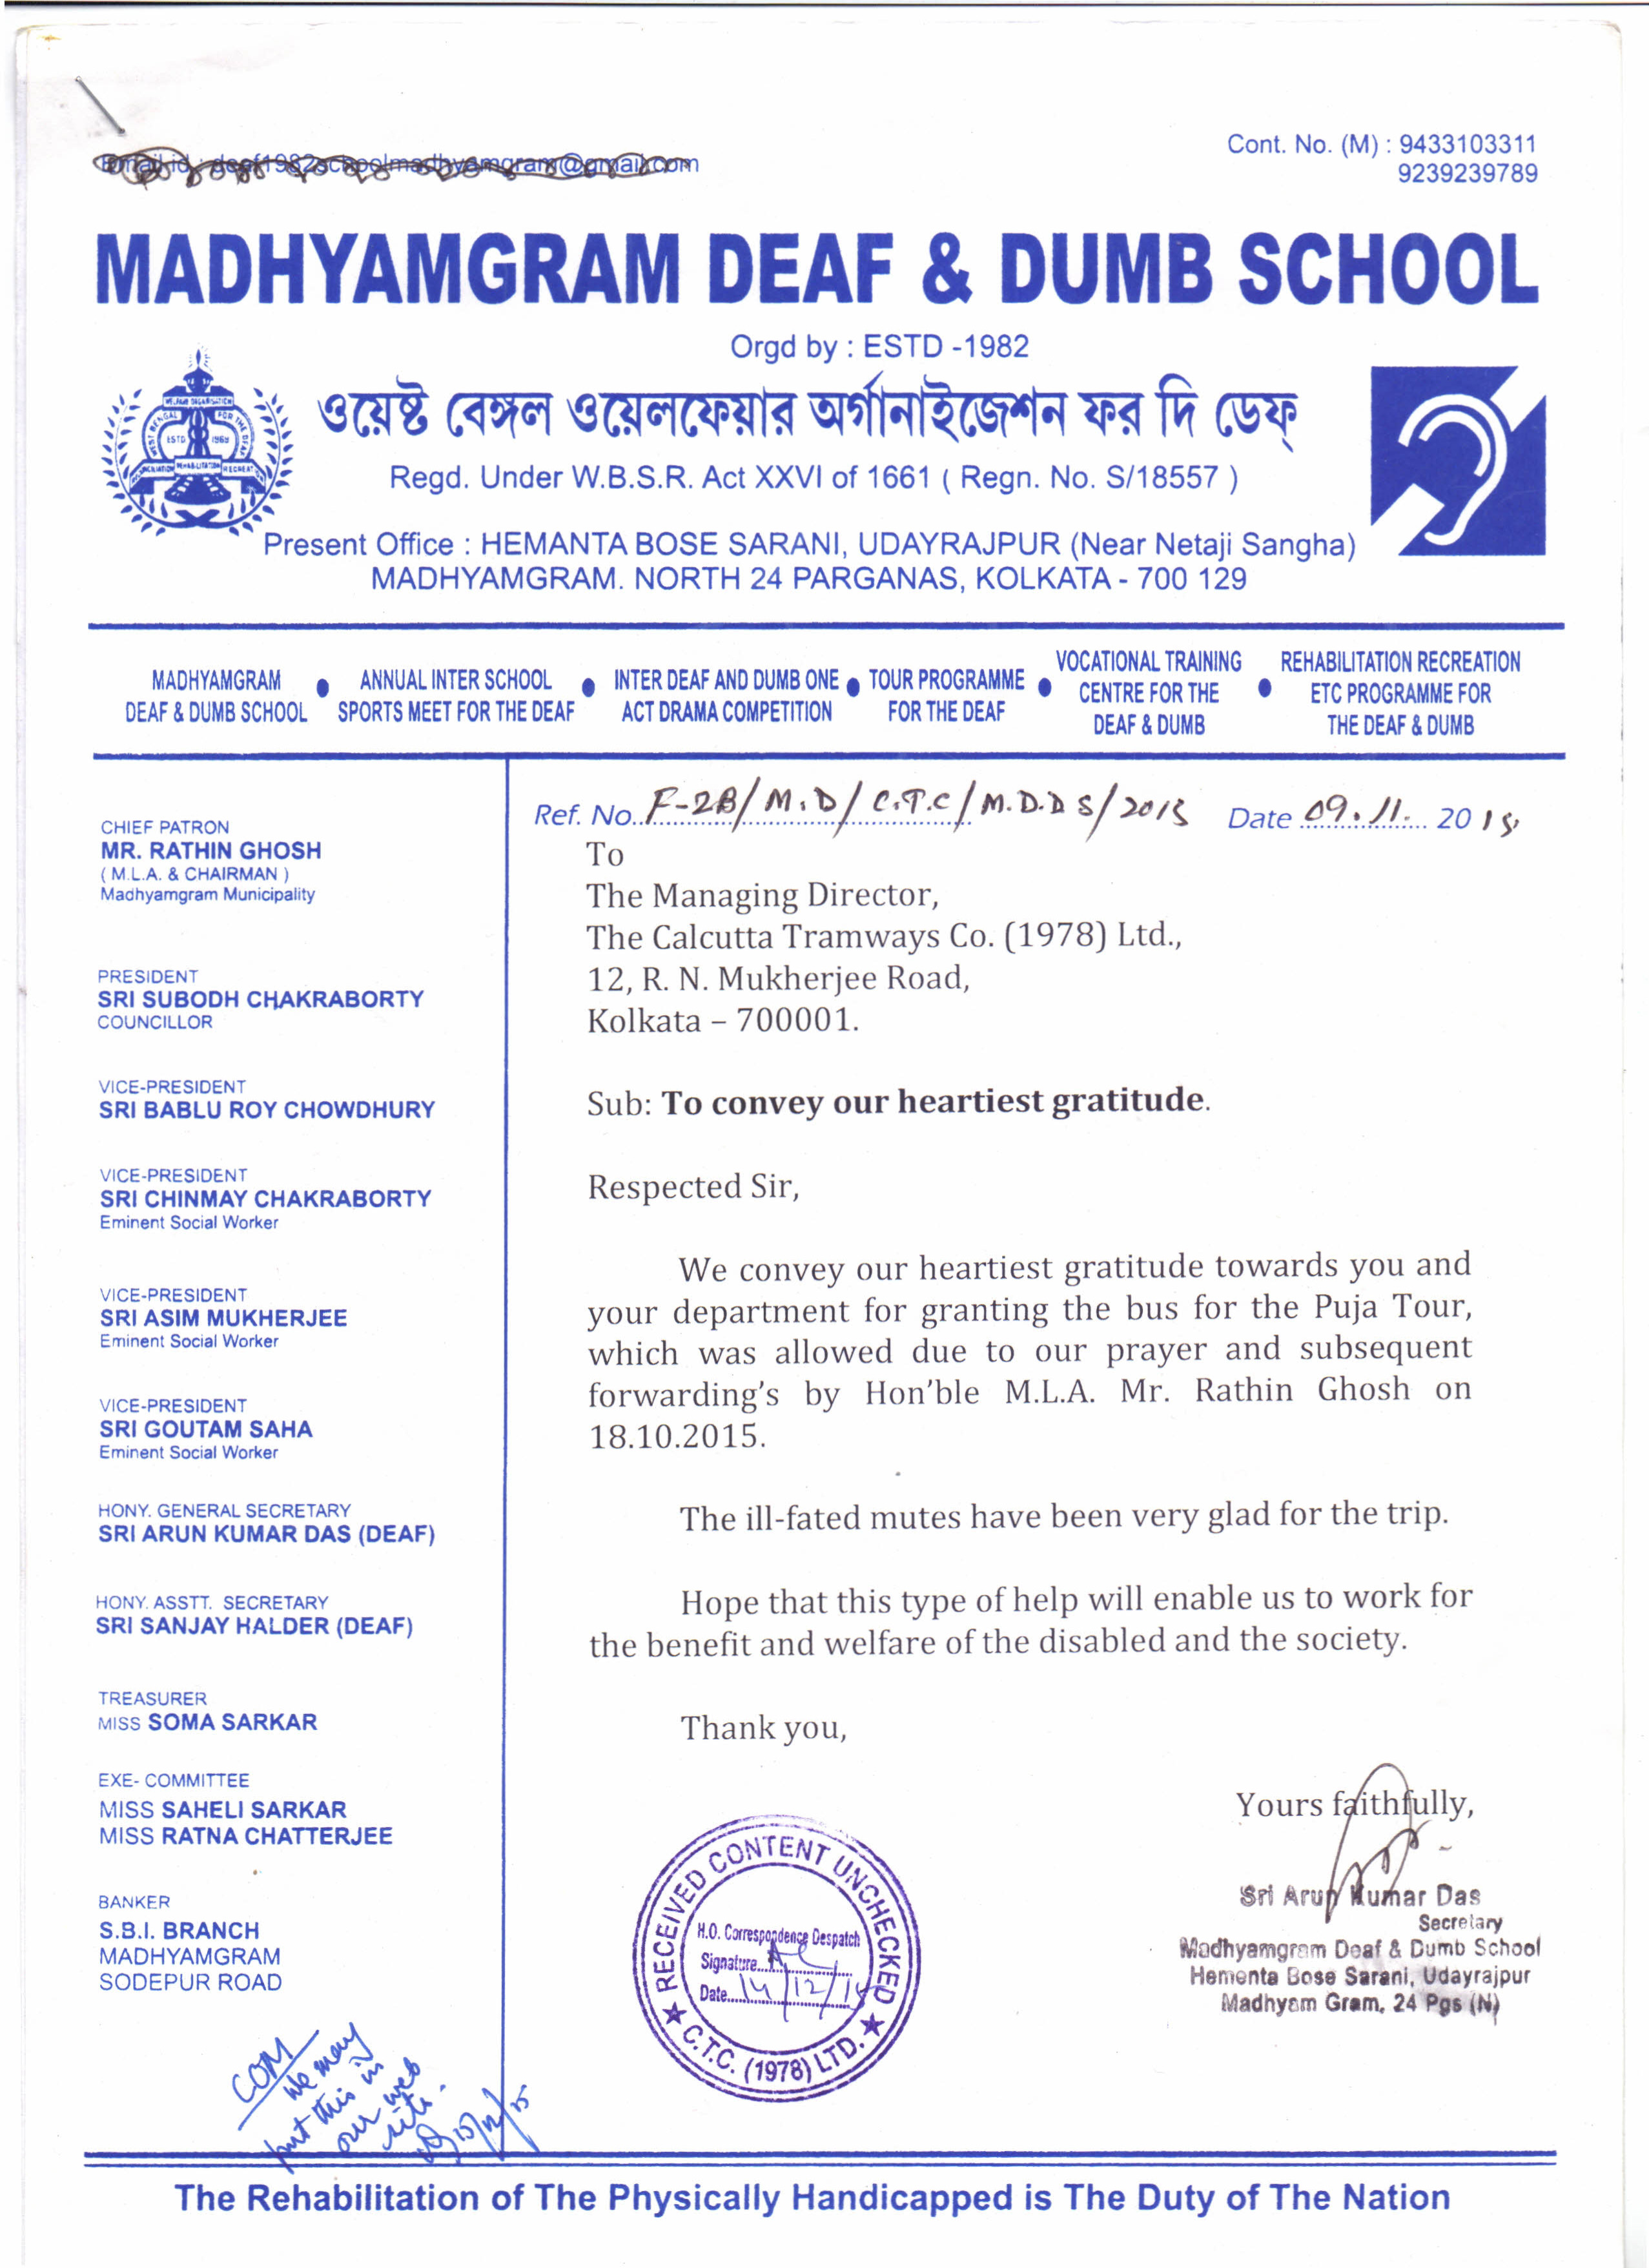 Letter of Madhyamgram Deaf & Dumb School